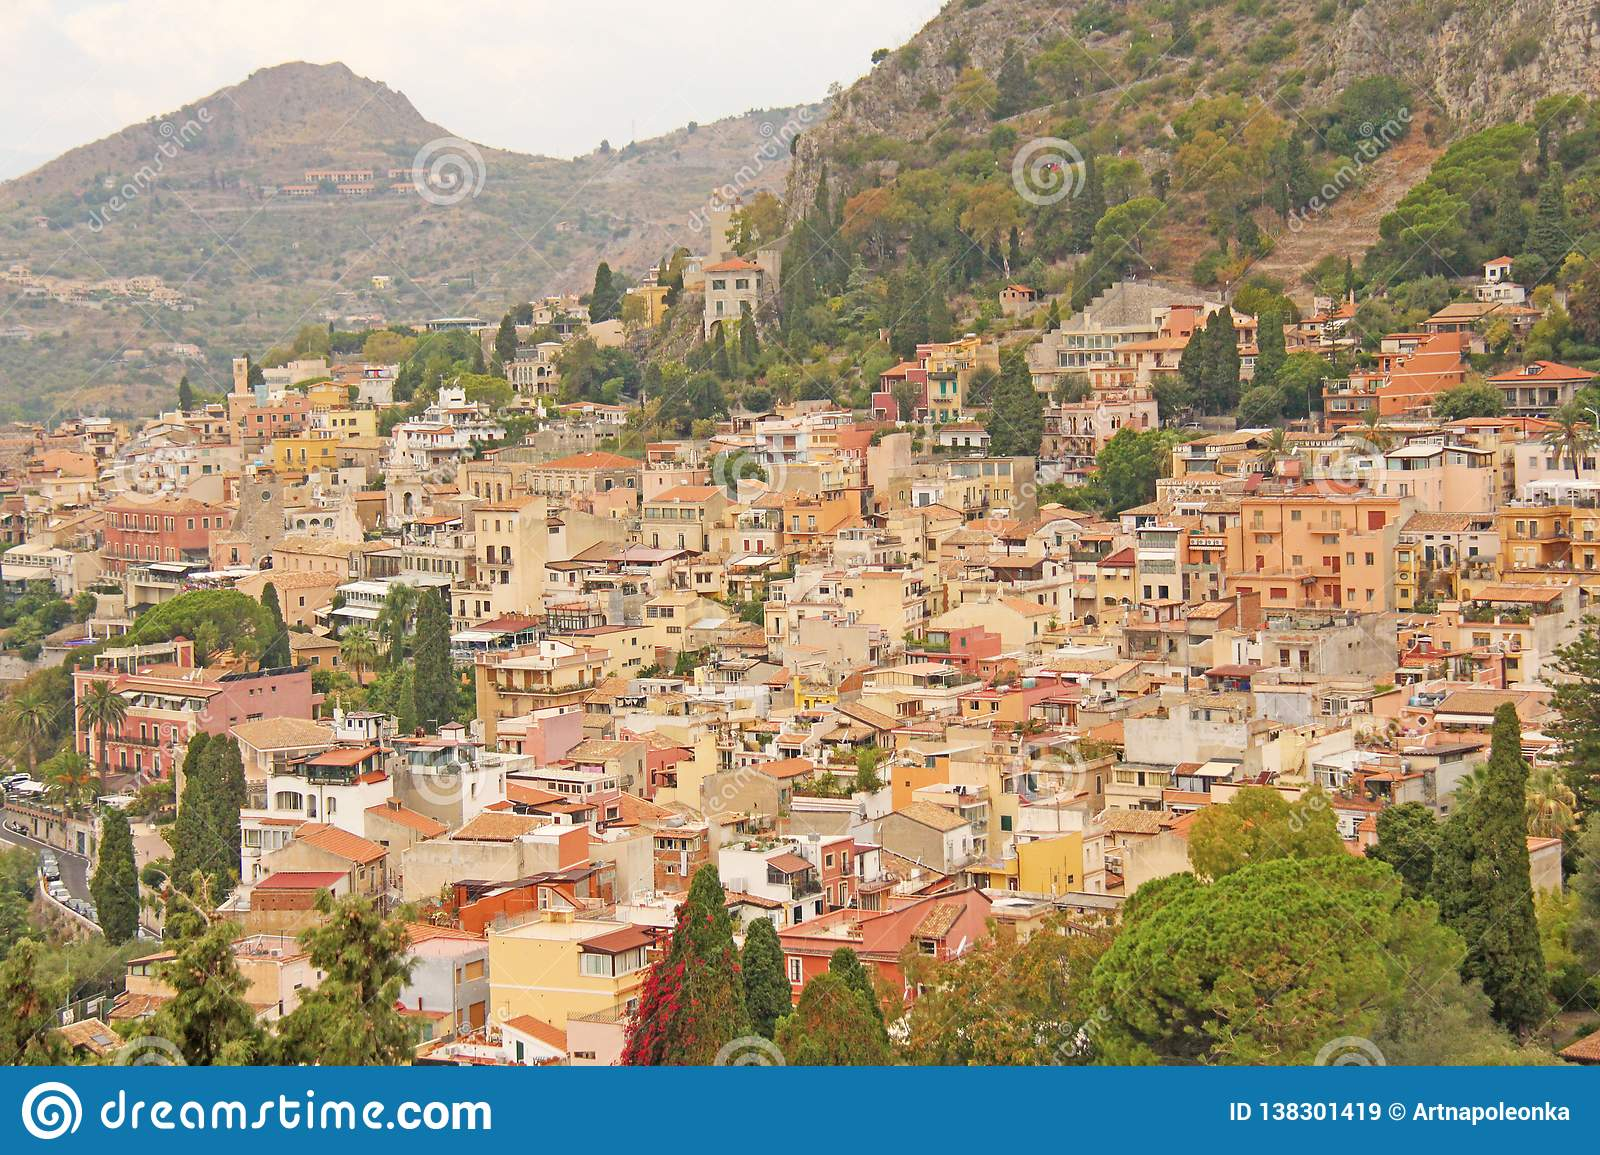 Beautiful Scenic View of Taormina`s Old Town. Terracotta Old Ancient City Houses with Tiled Roofs. The island of Sicily, Italy